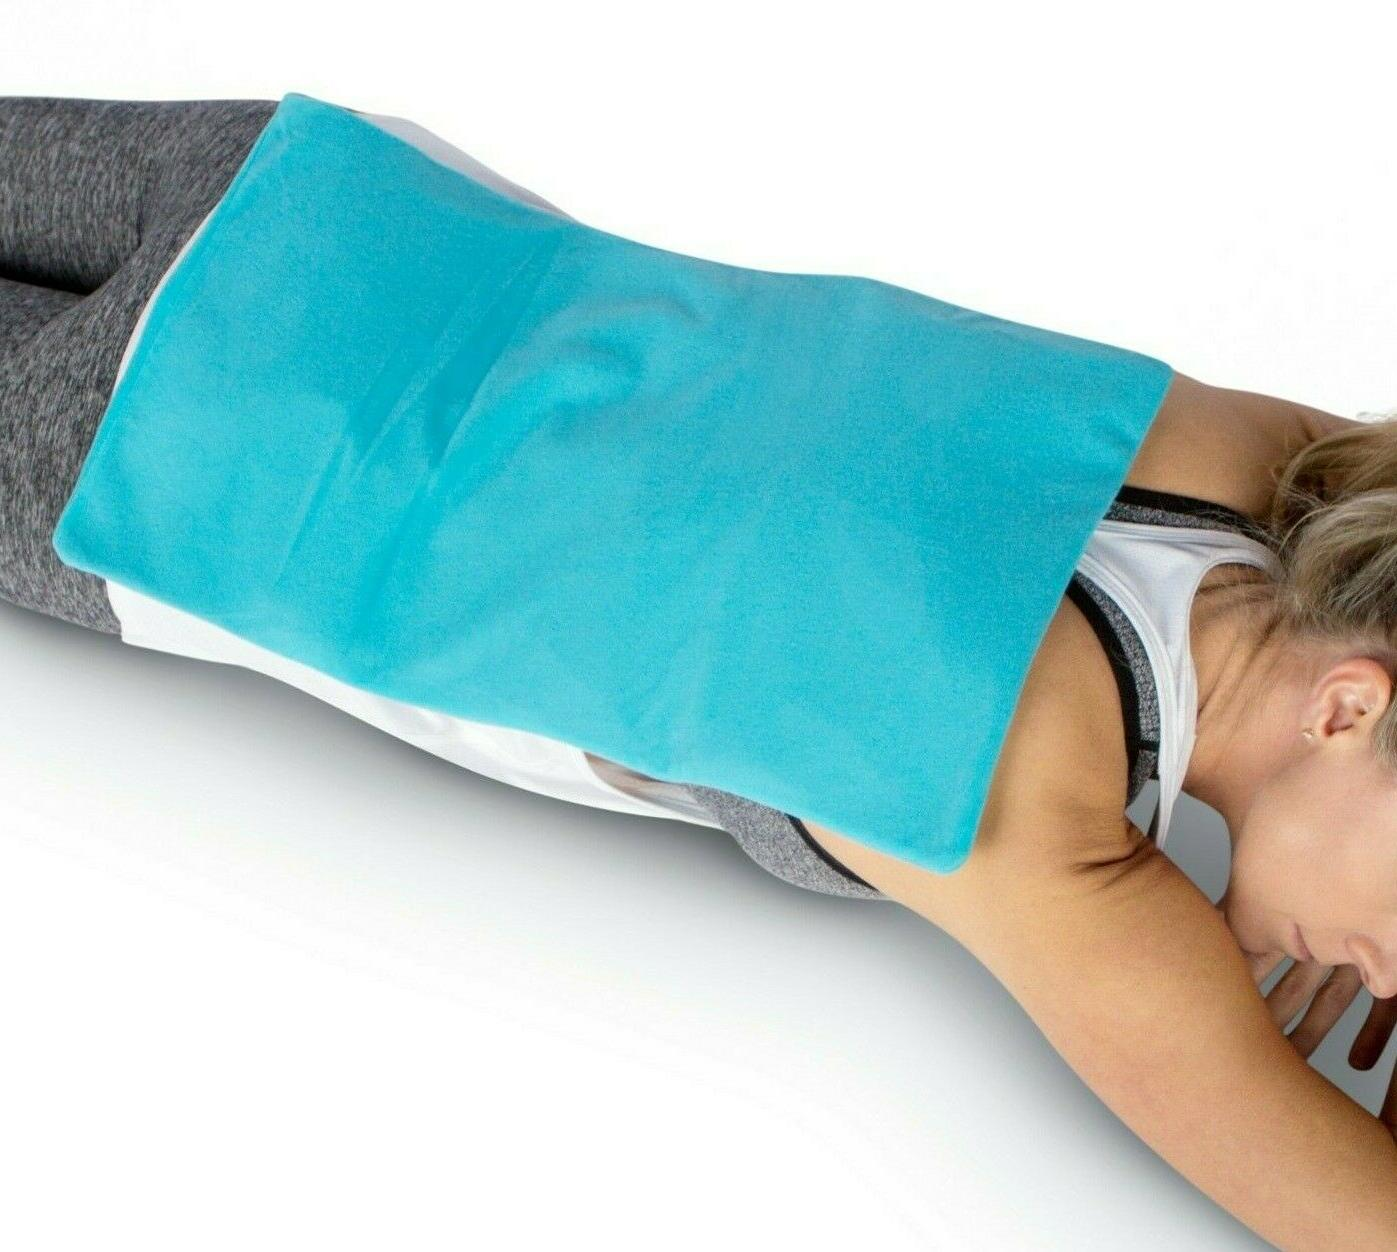 extra large ice pack for injuries covers